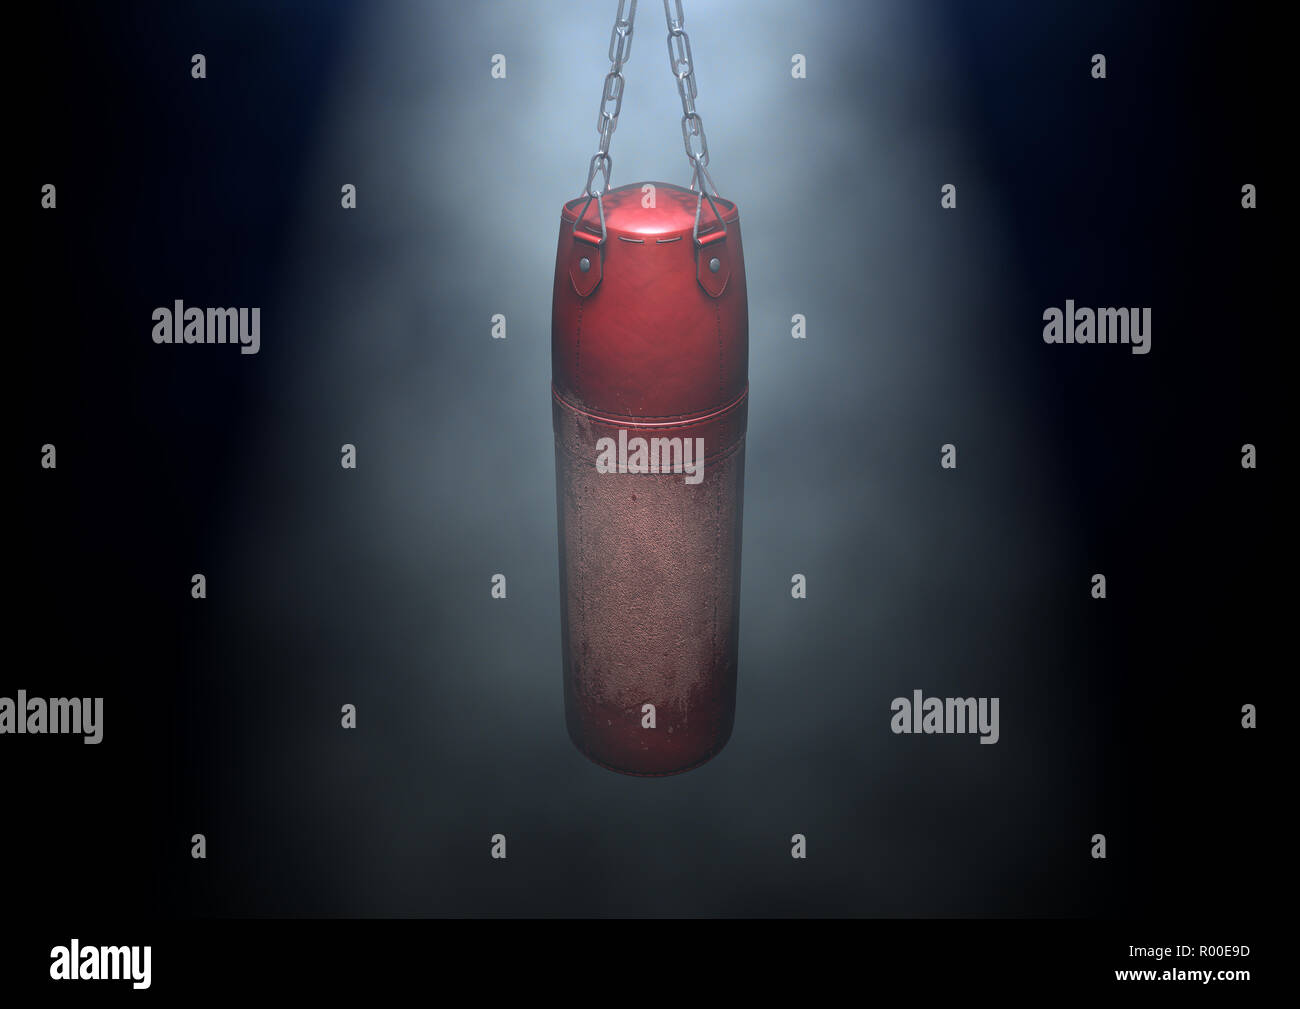 An old worn red leather punching bag hanging by chains in a  dark room lit by an ethereal spotlight - 3D render - Stock Image